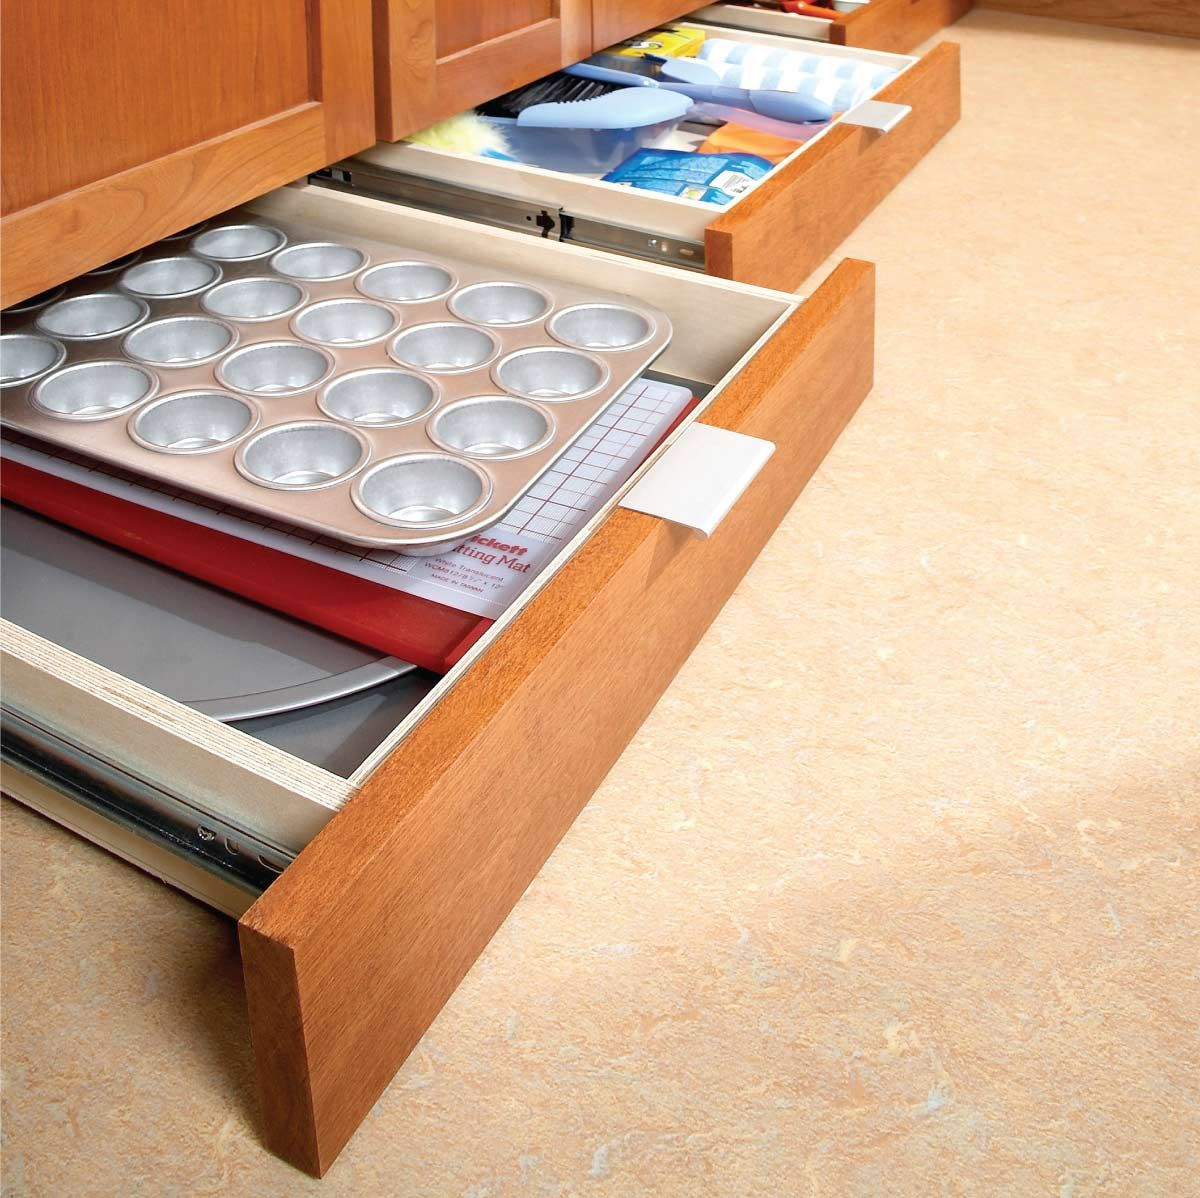 How To Build Under Cabinet Drawers Increase Kitchen Storage Under Cabinet Drawers Kitchen Storage Hacks Diy Kitchen Storage